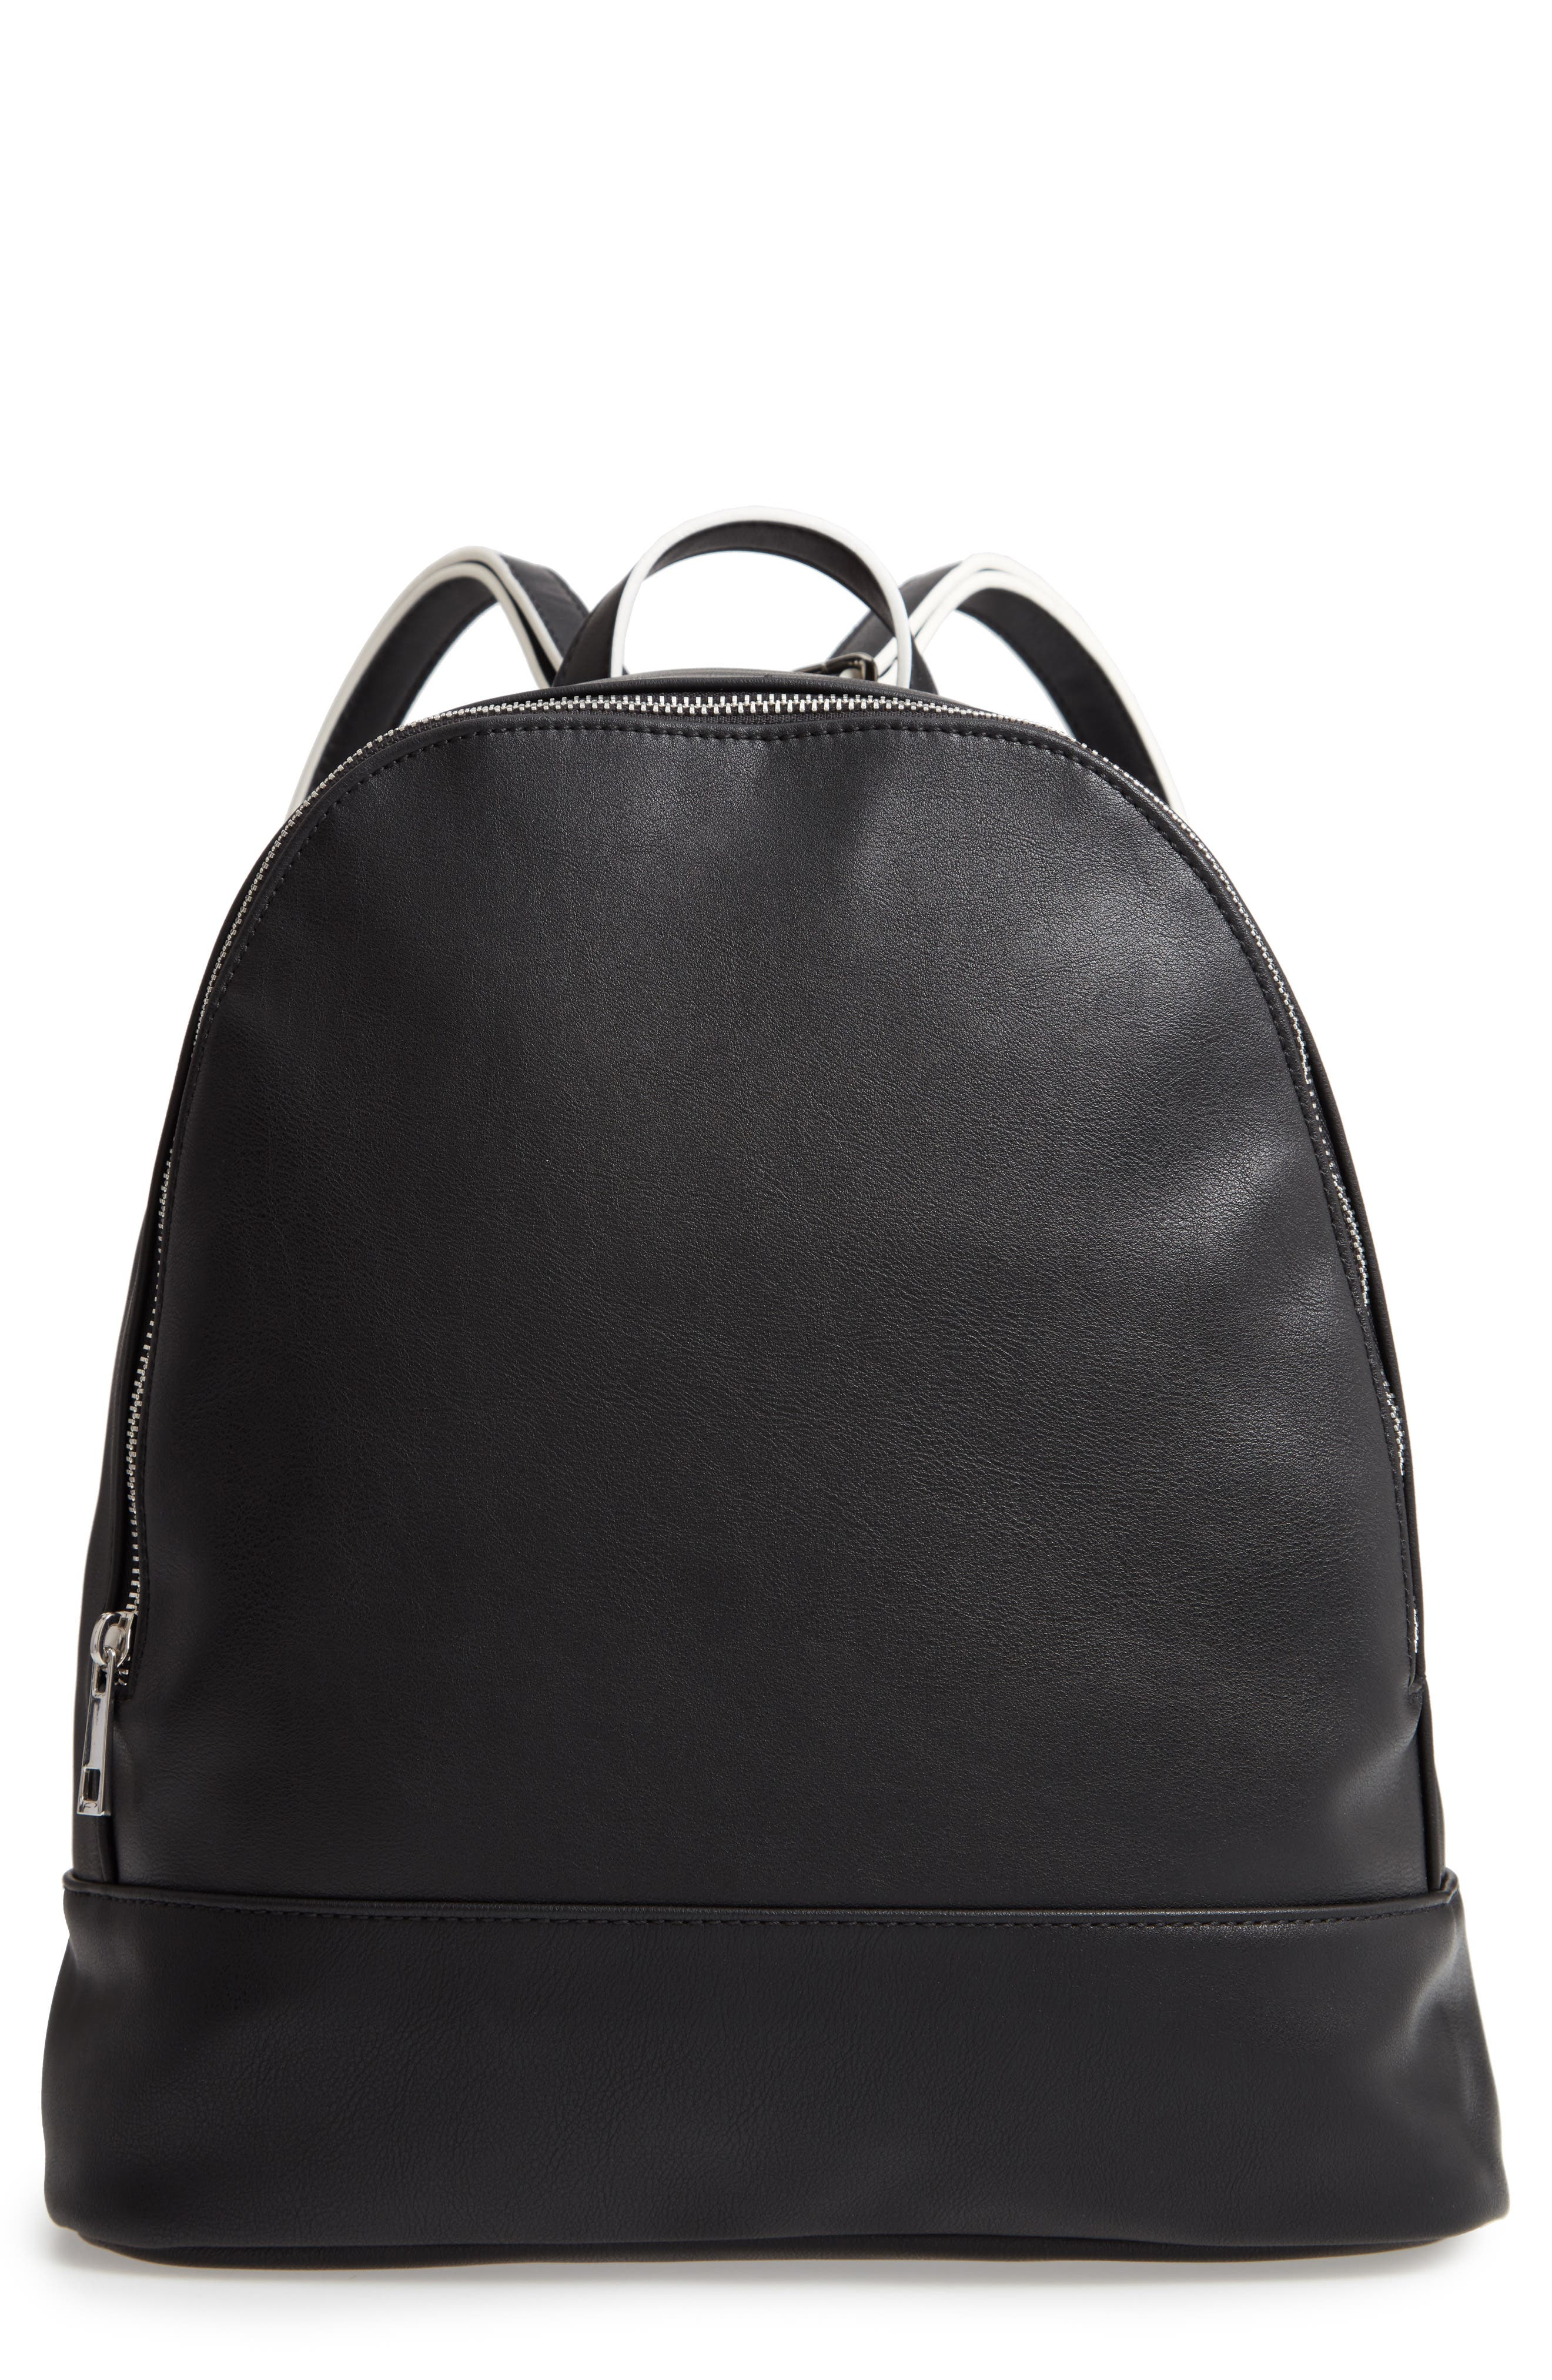 SOLE SOCIETY Haili Faux Leather Backpack, Main, color, 001